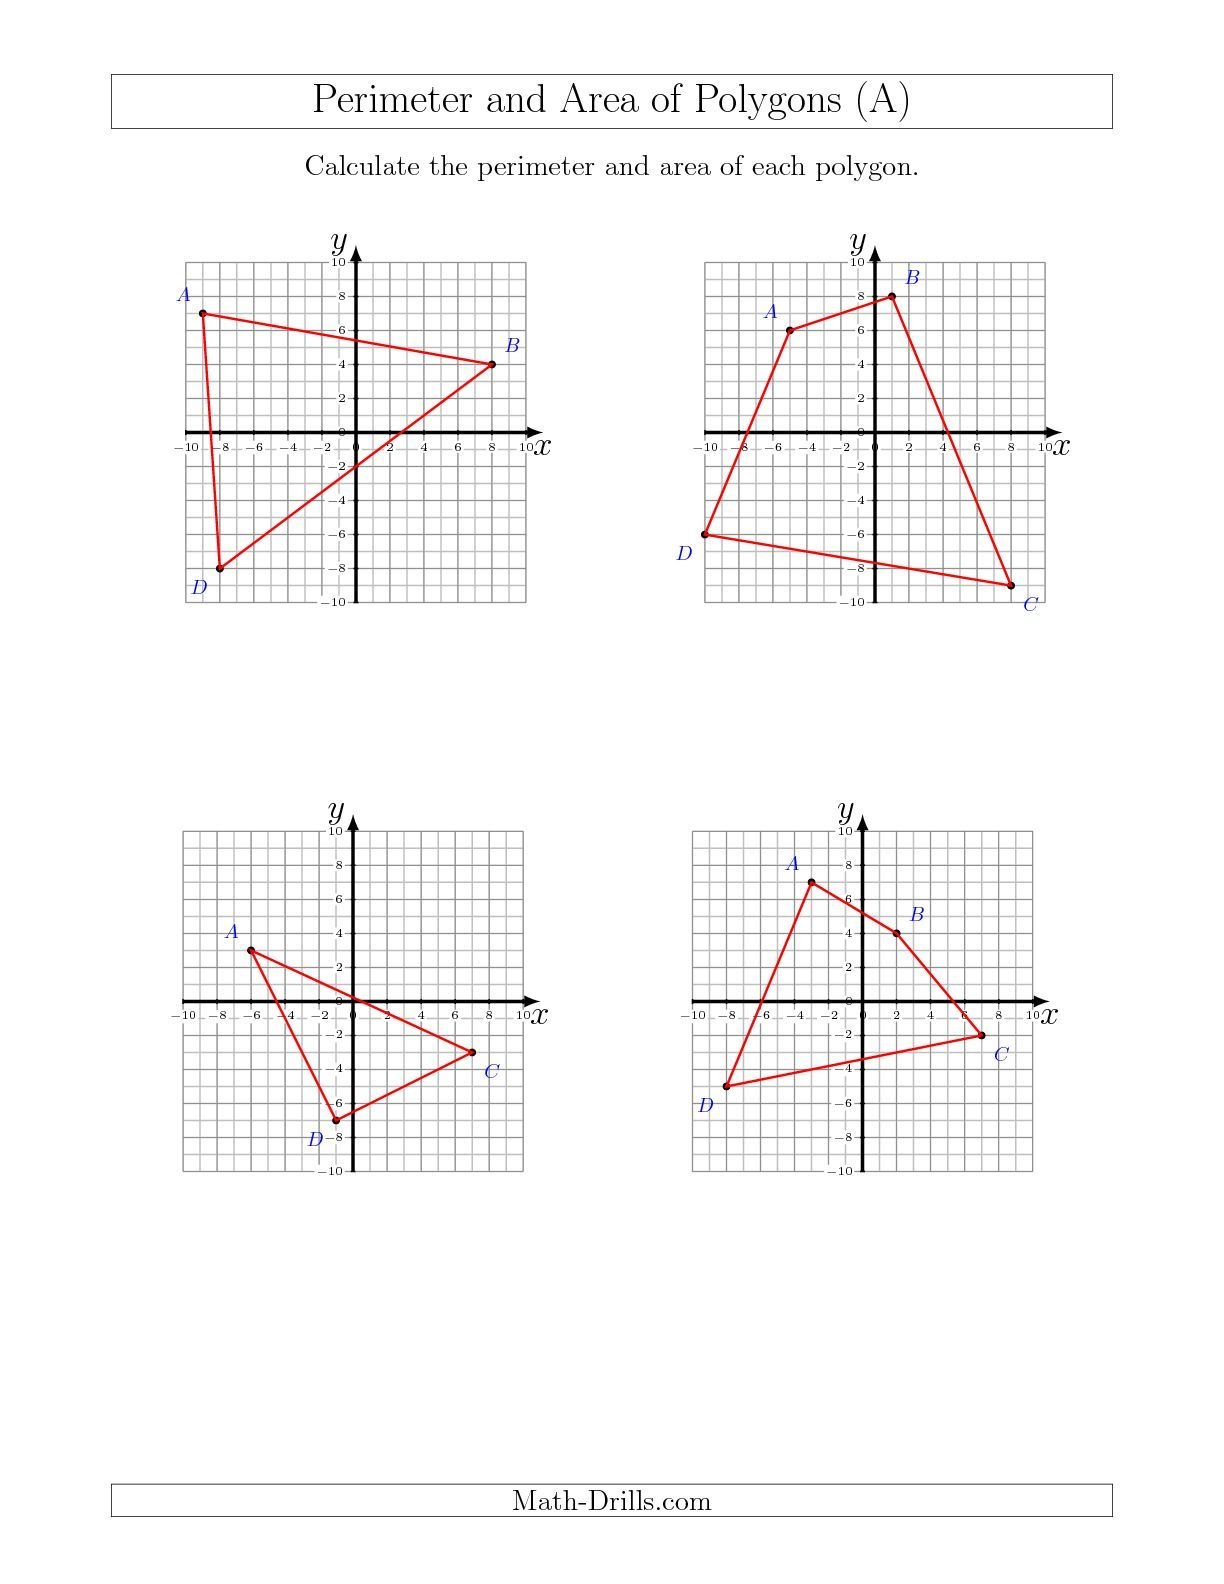 Perimeter and Area of Polygons on Coordinate Planes (A) Geometry Worksheet    Geometry worksheets [ 1584 x 1224 Pixel ]